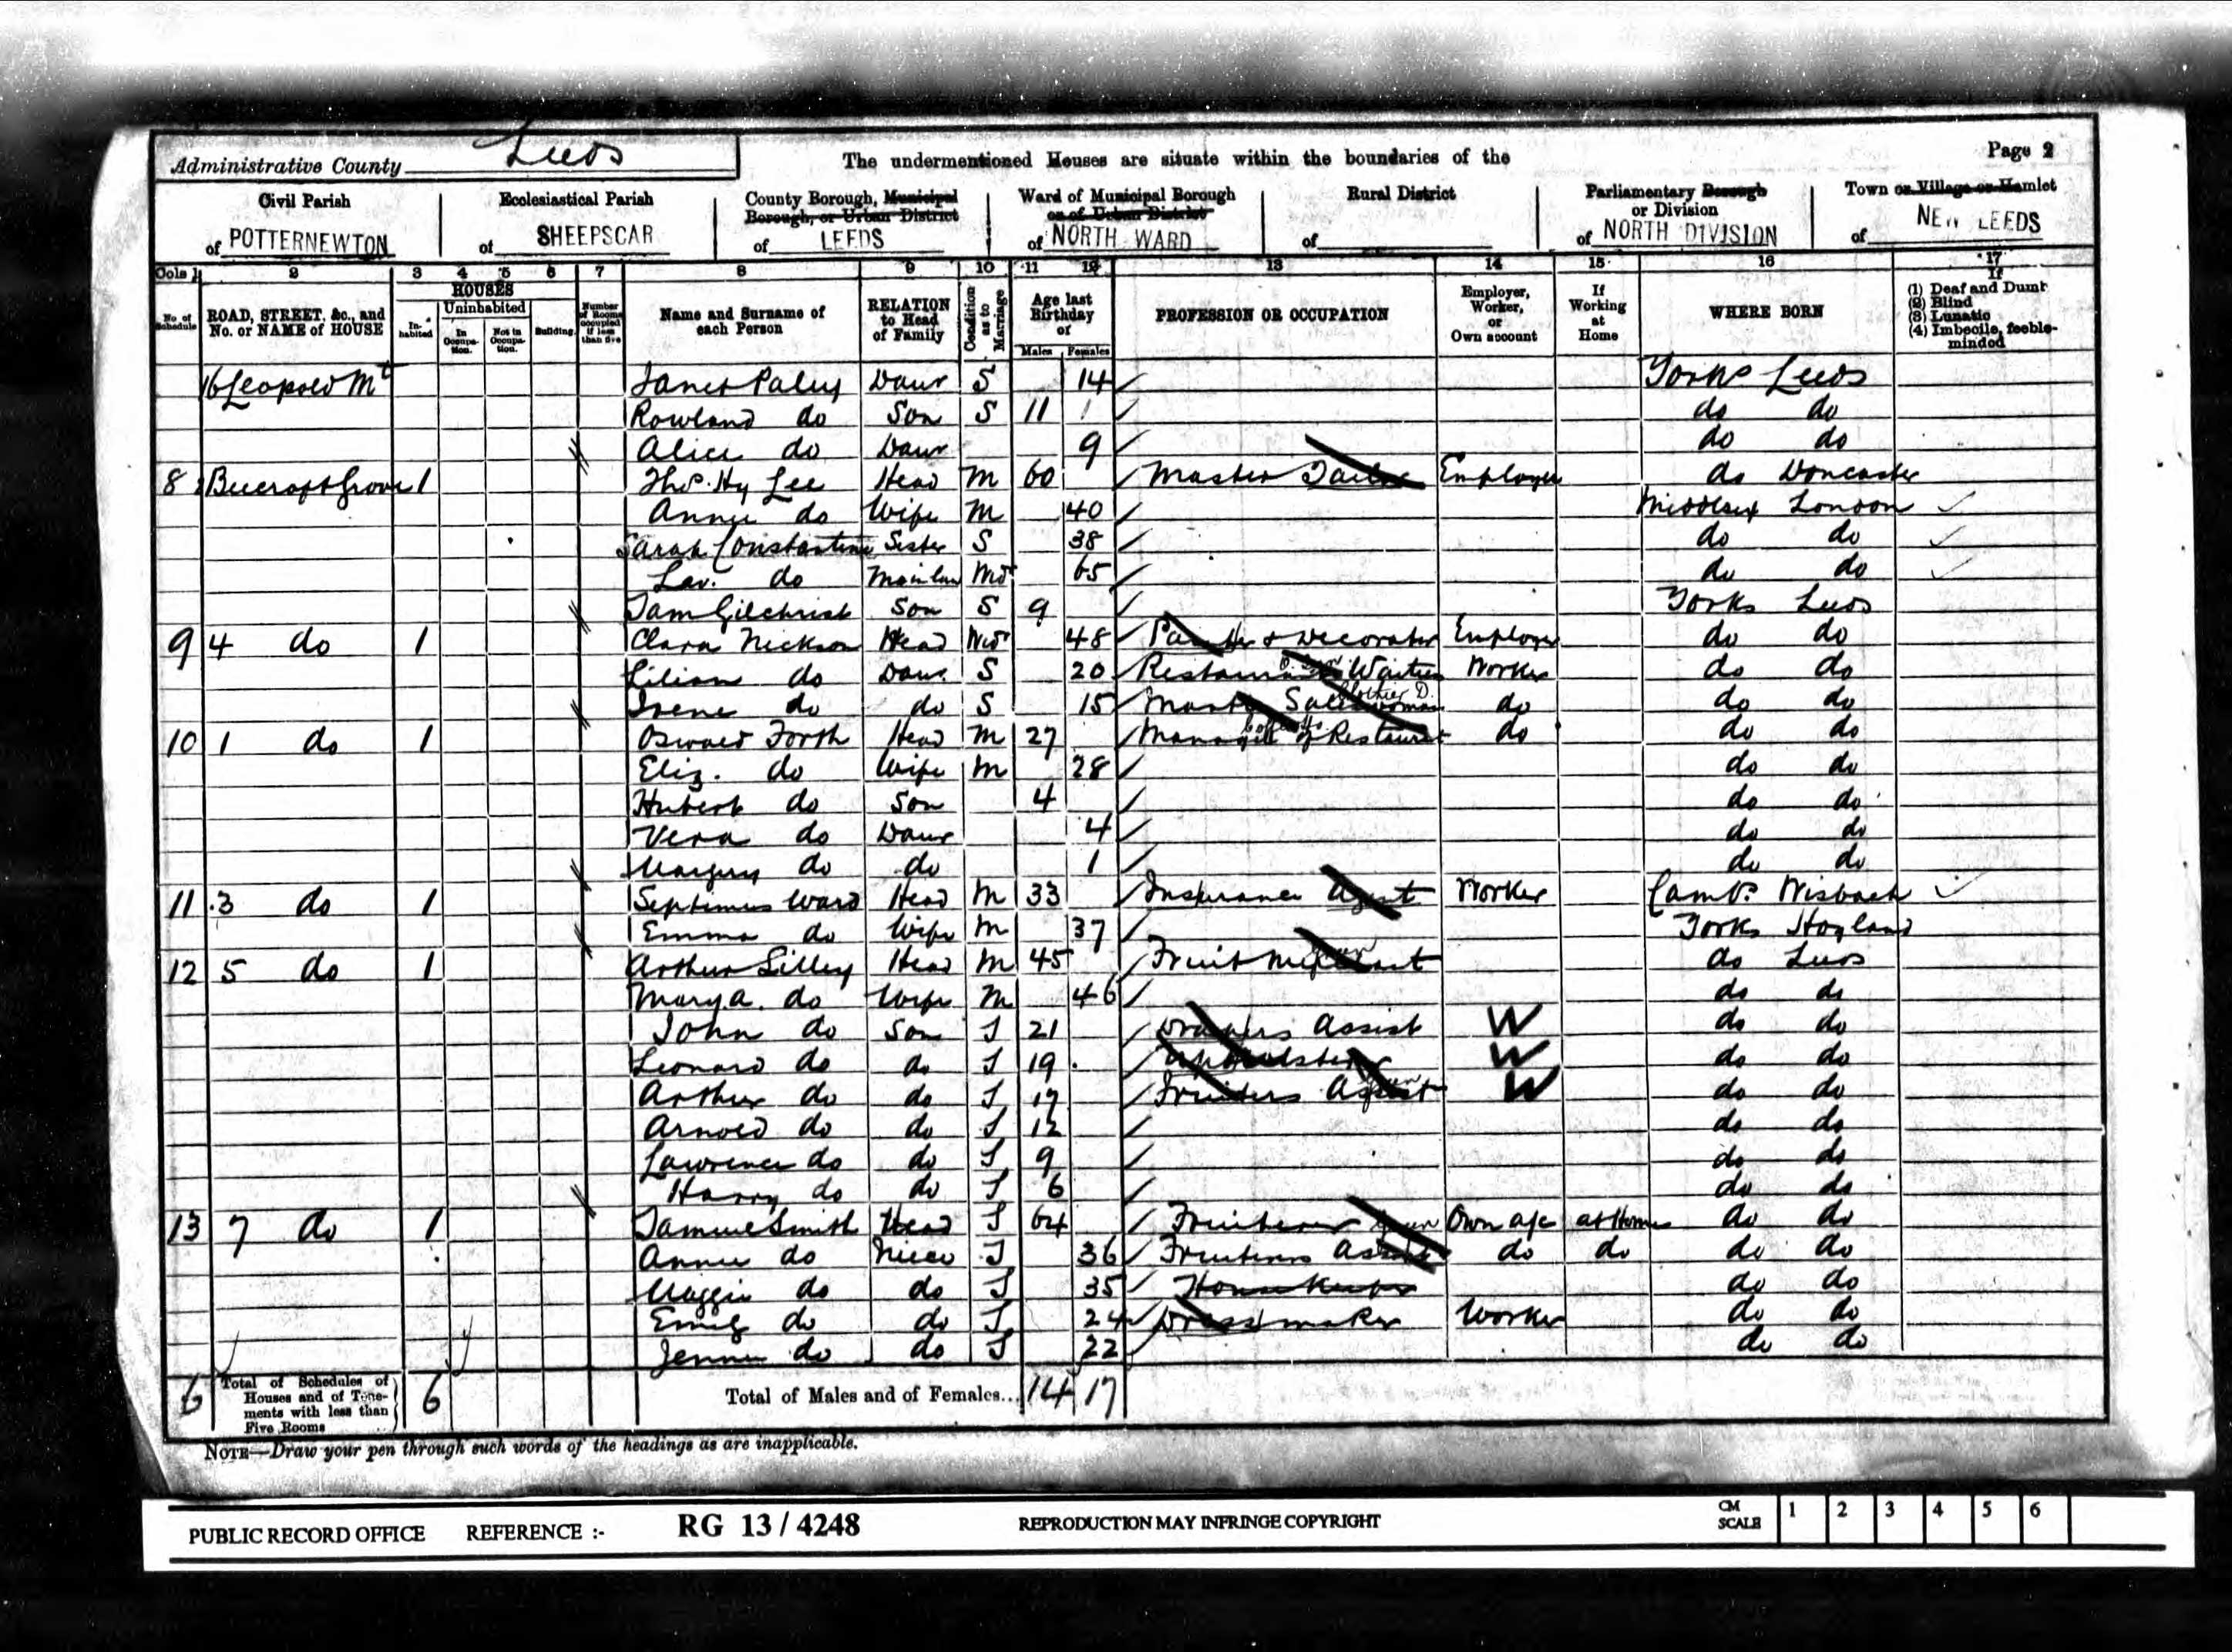 Lilian Nickson 1901 census